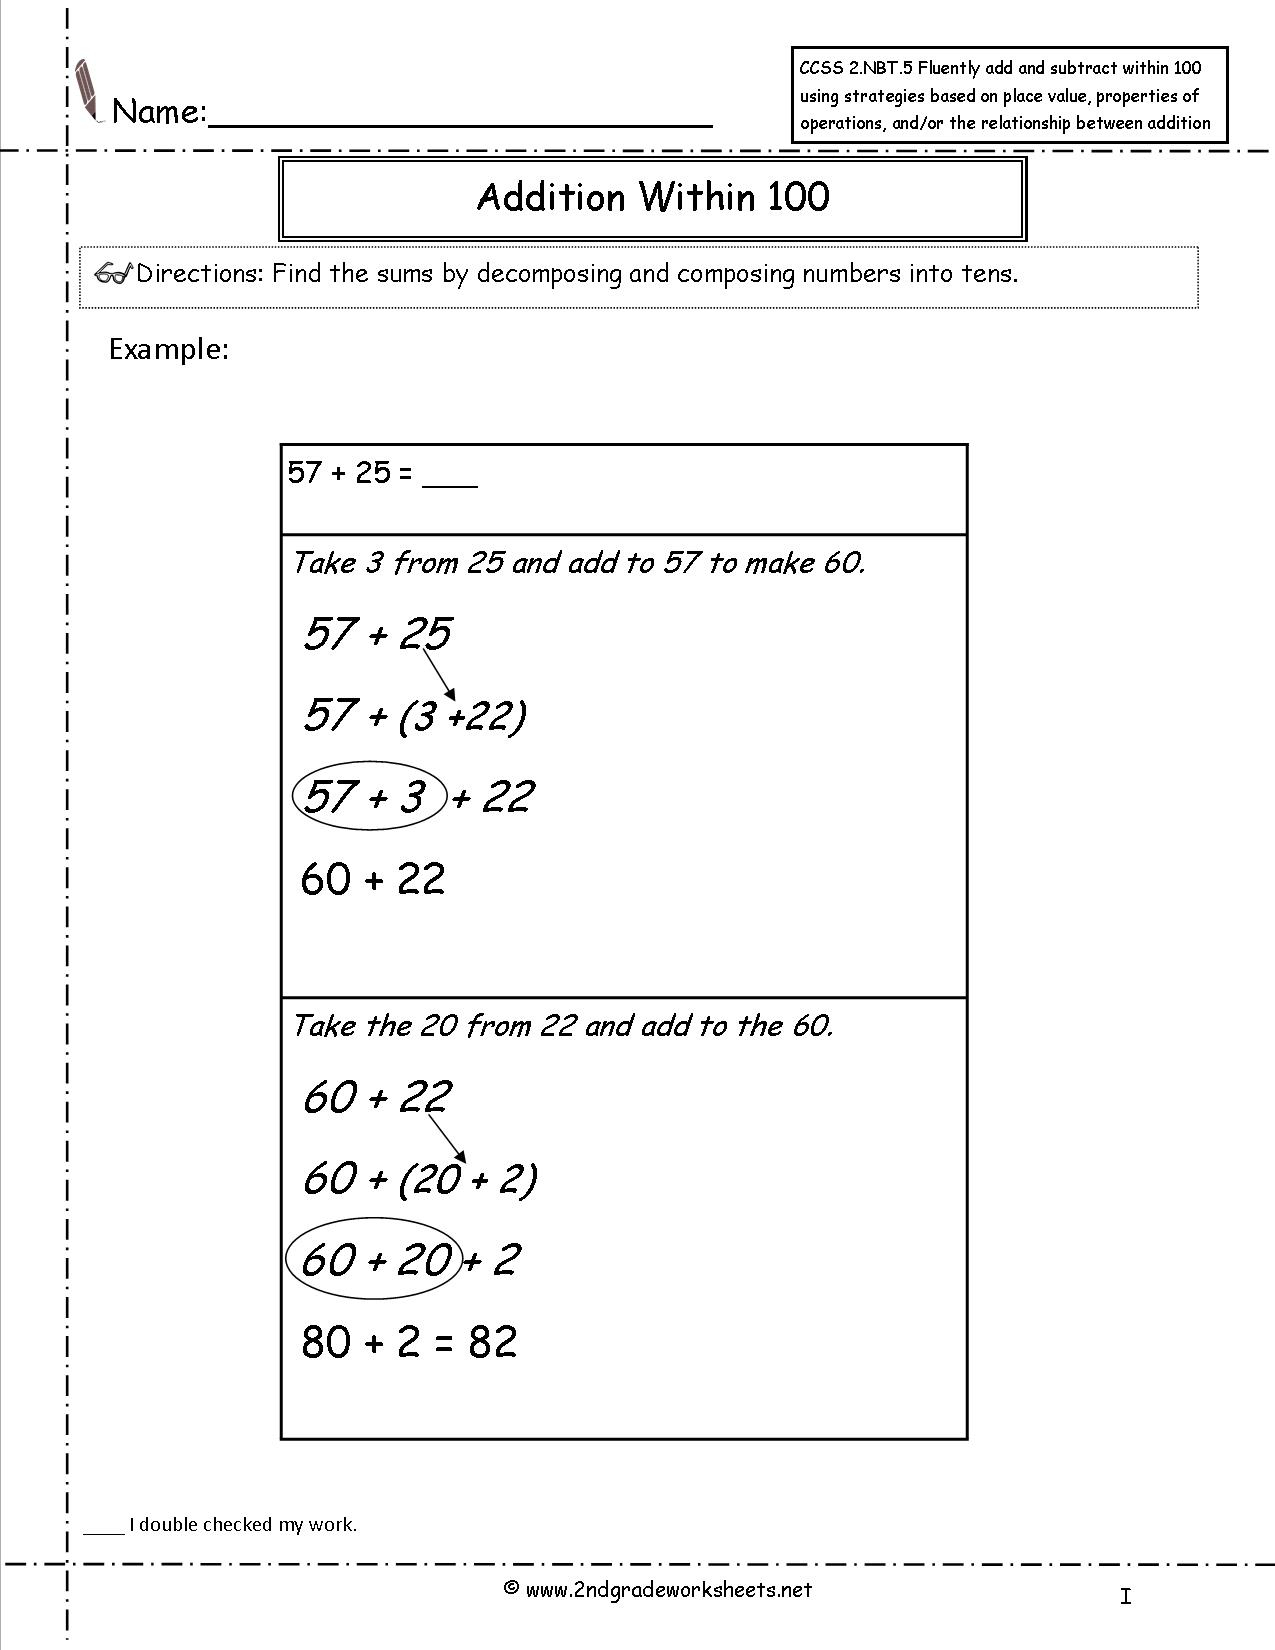 Worksheet. Common Core Math Worksheets. Worksheet Fun Worksheet - Free Printable Common Core Math Worksheets For Third Grade